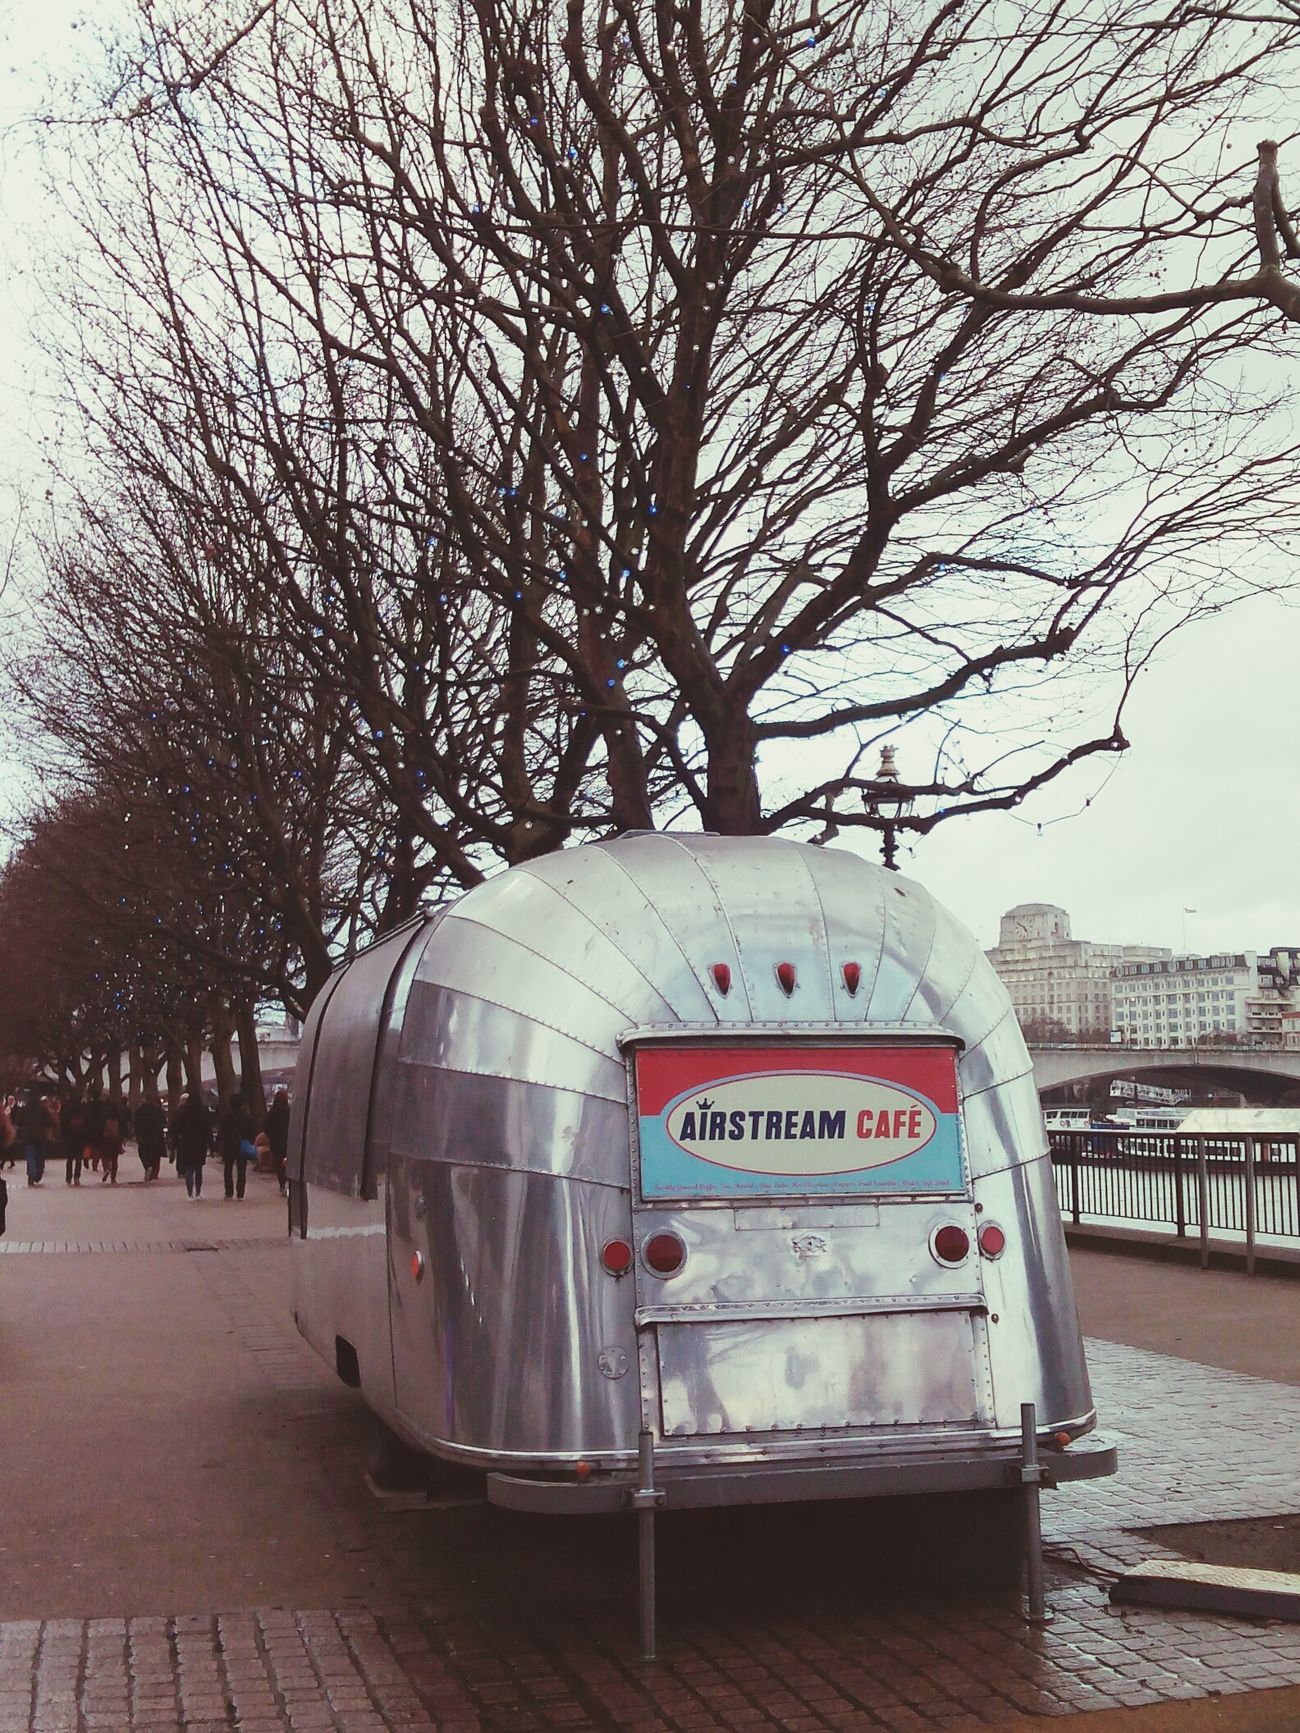 Travel London TheQueensWalk Airstream Café Airstream